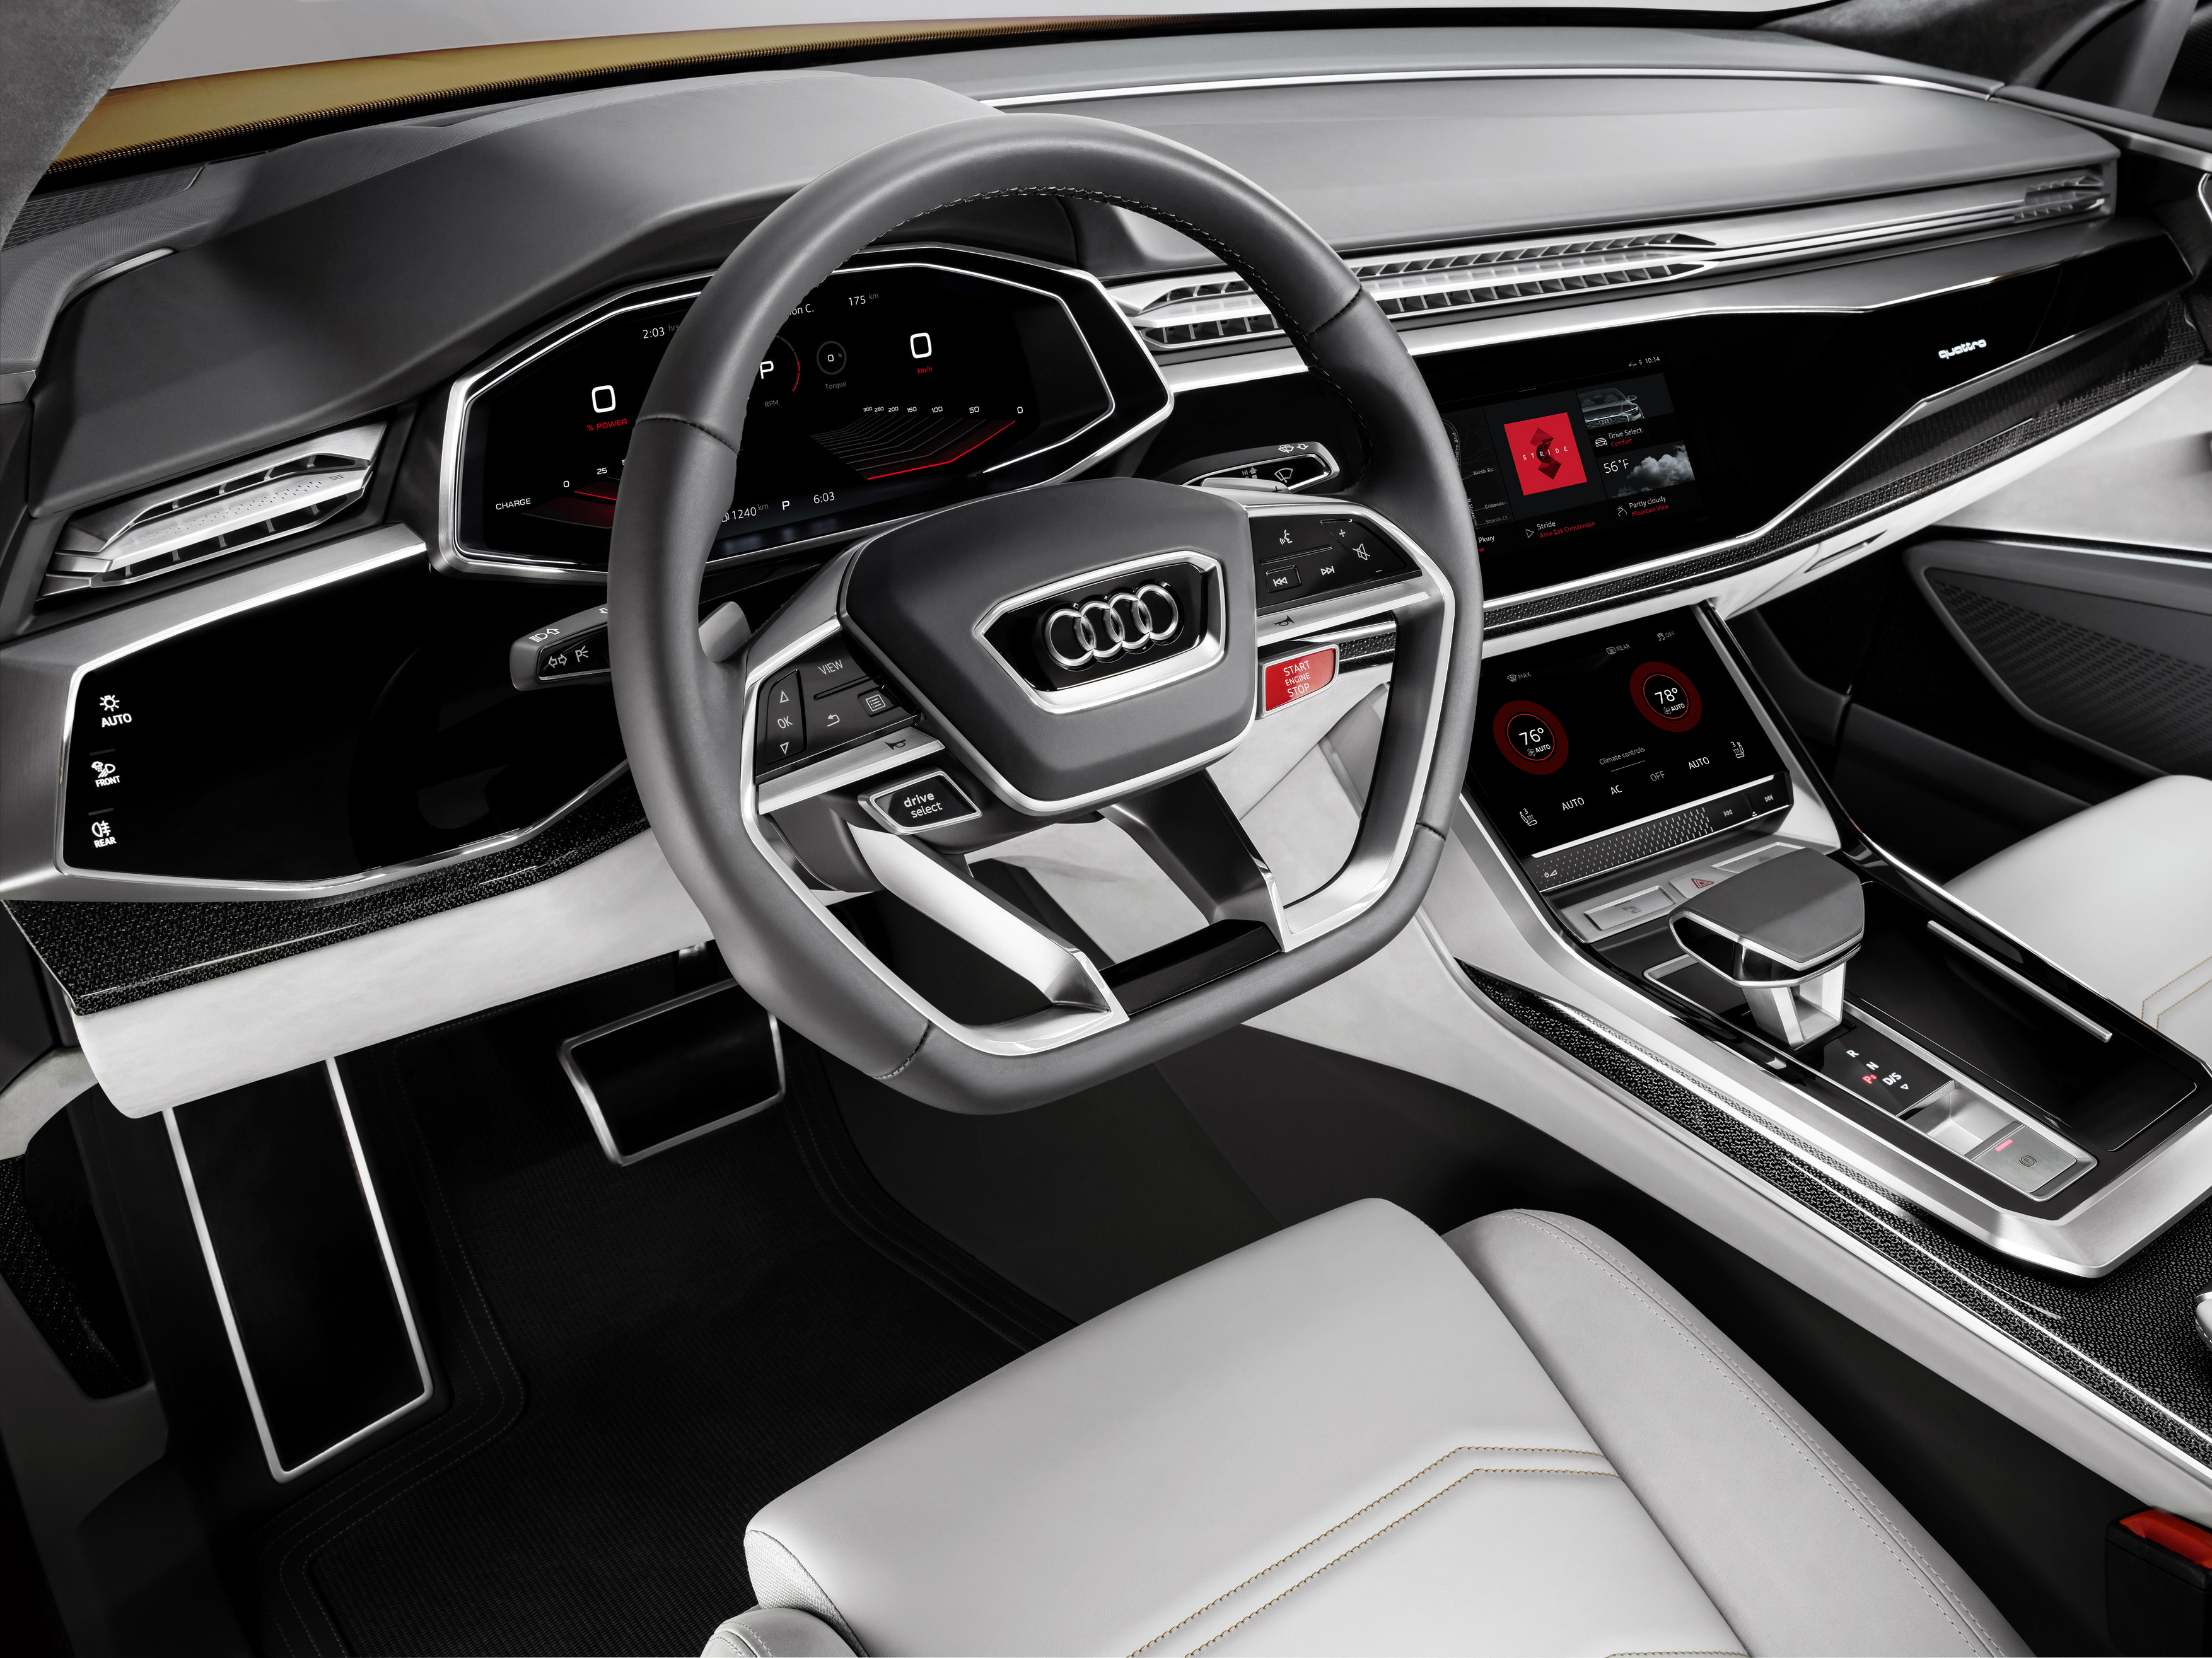 Audi And Volvo Will Use Android As The Operating System In